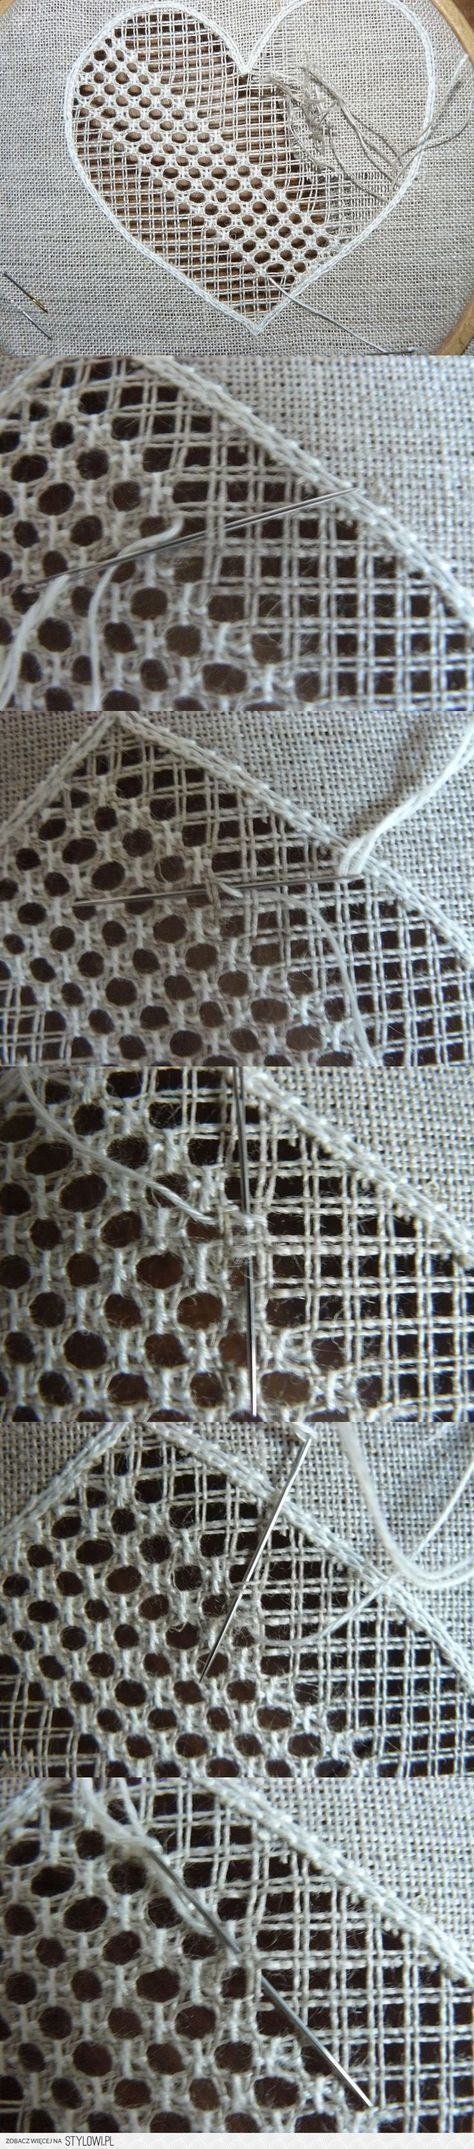 Hardanger Embroidery - This appears to be the same stitch used in chair seats.